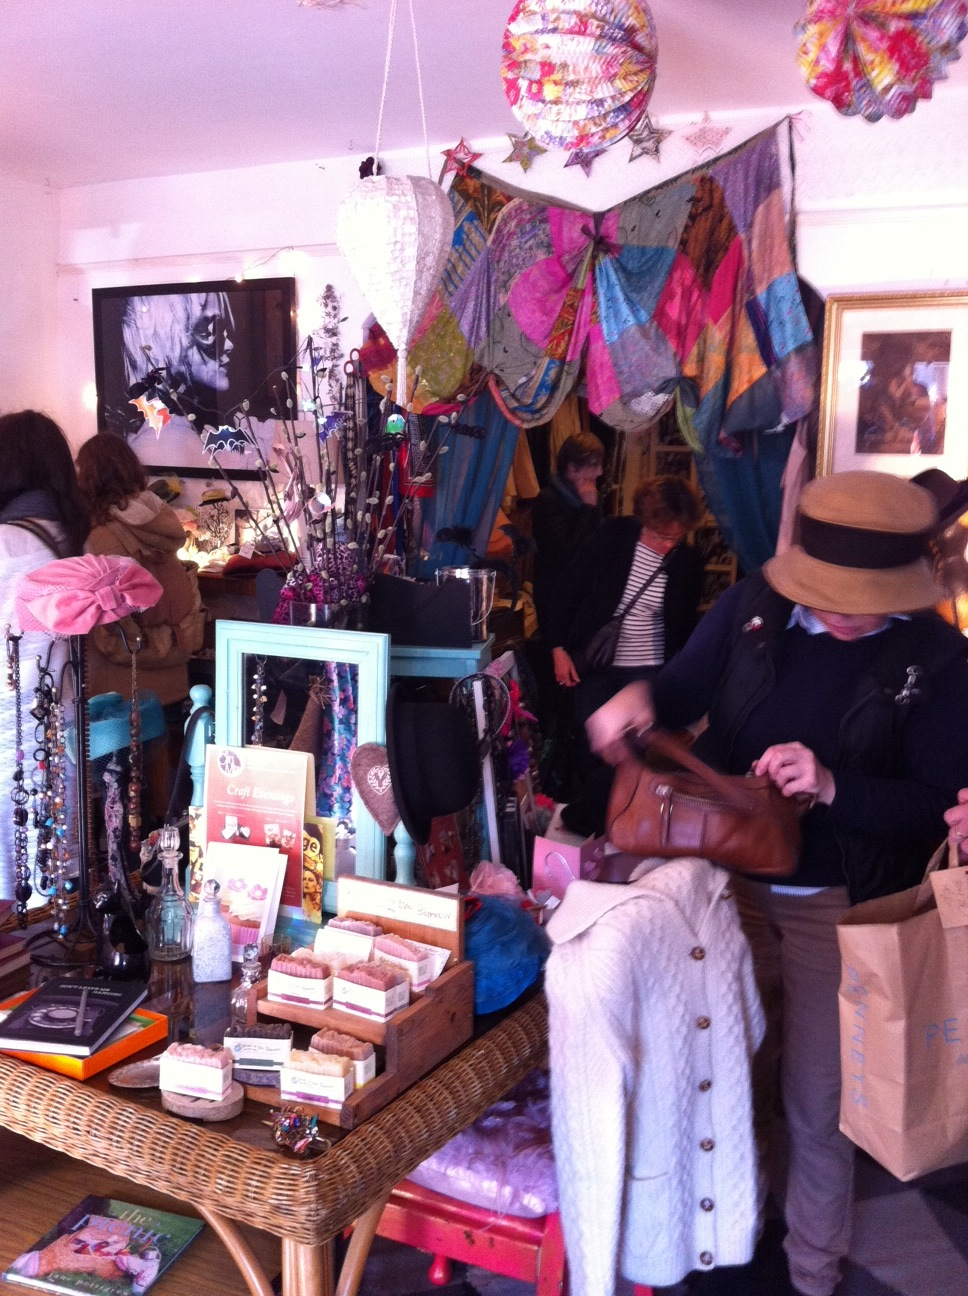 Cat Meow was full of shoppers searching for vintage fashion finds.